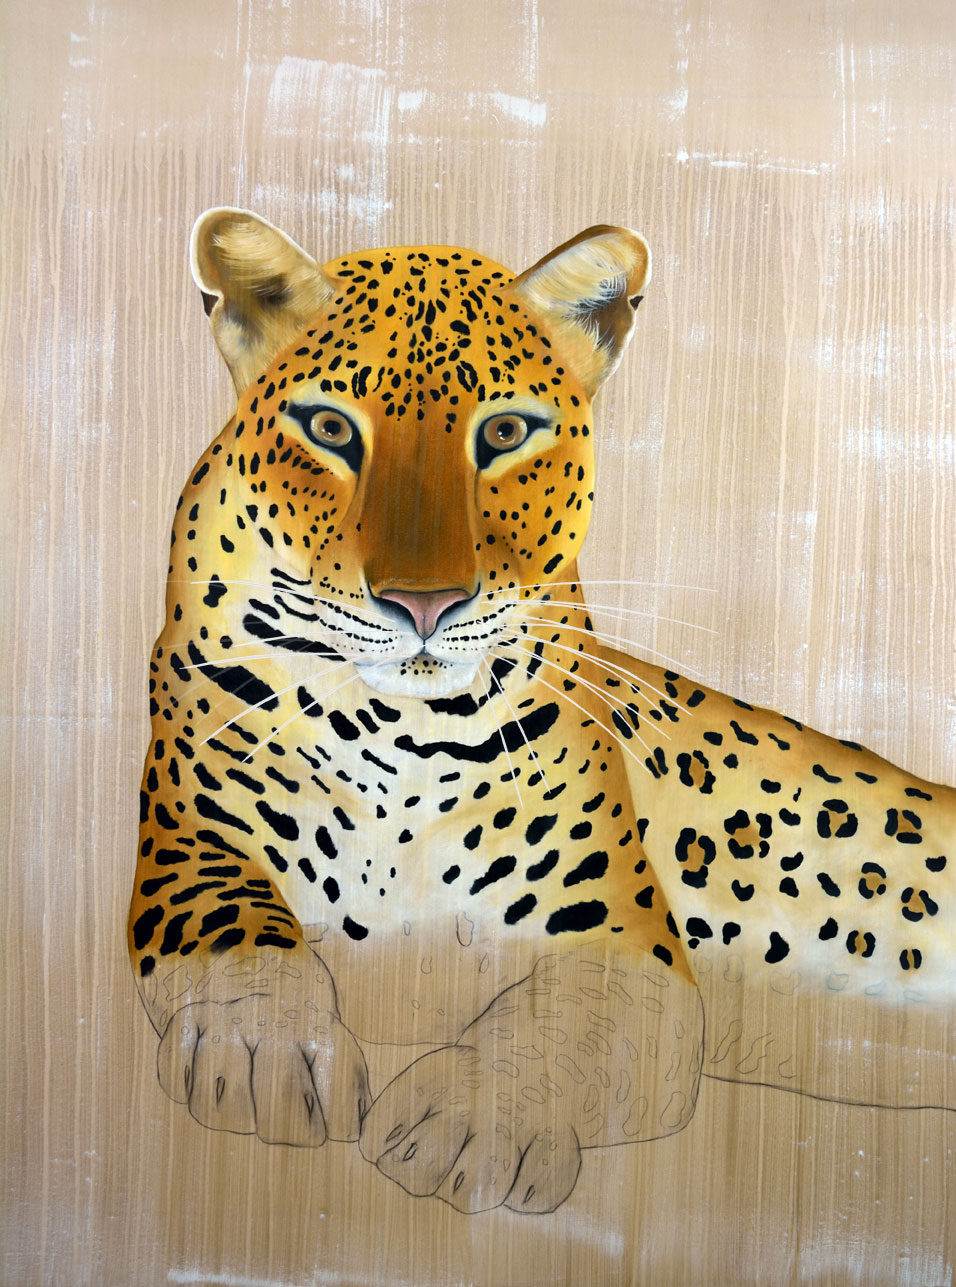 Panthera Pardus Panthera Thierry Bisch photographer Clementine de Forton Gallery